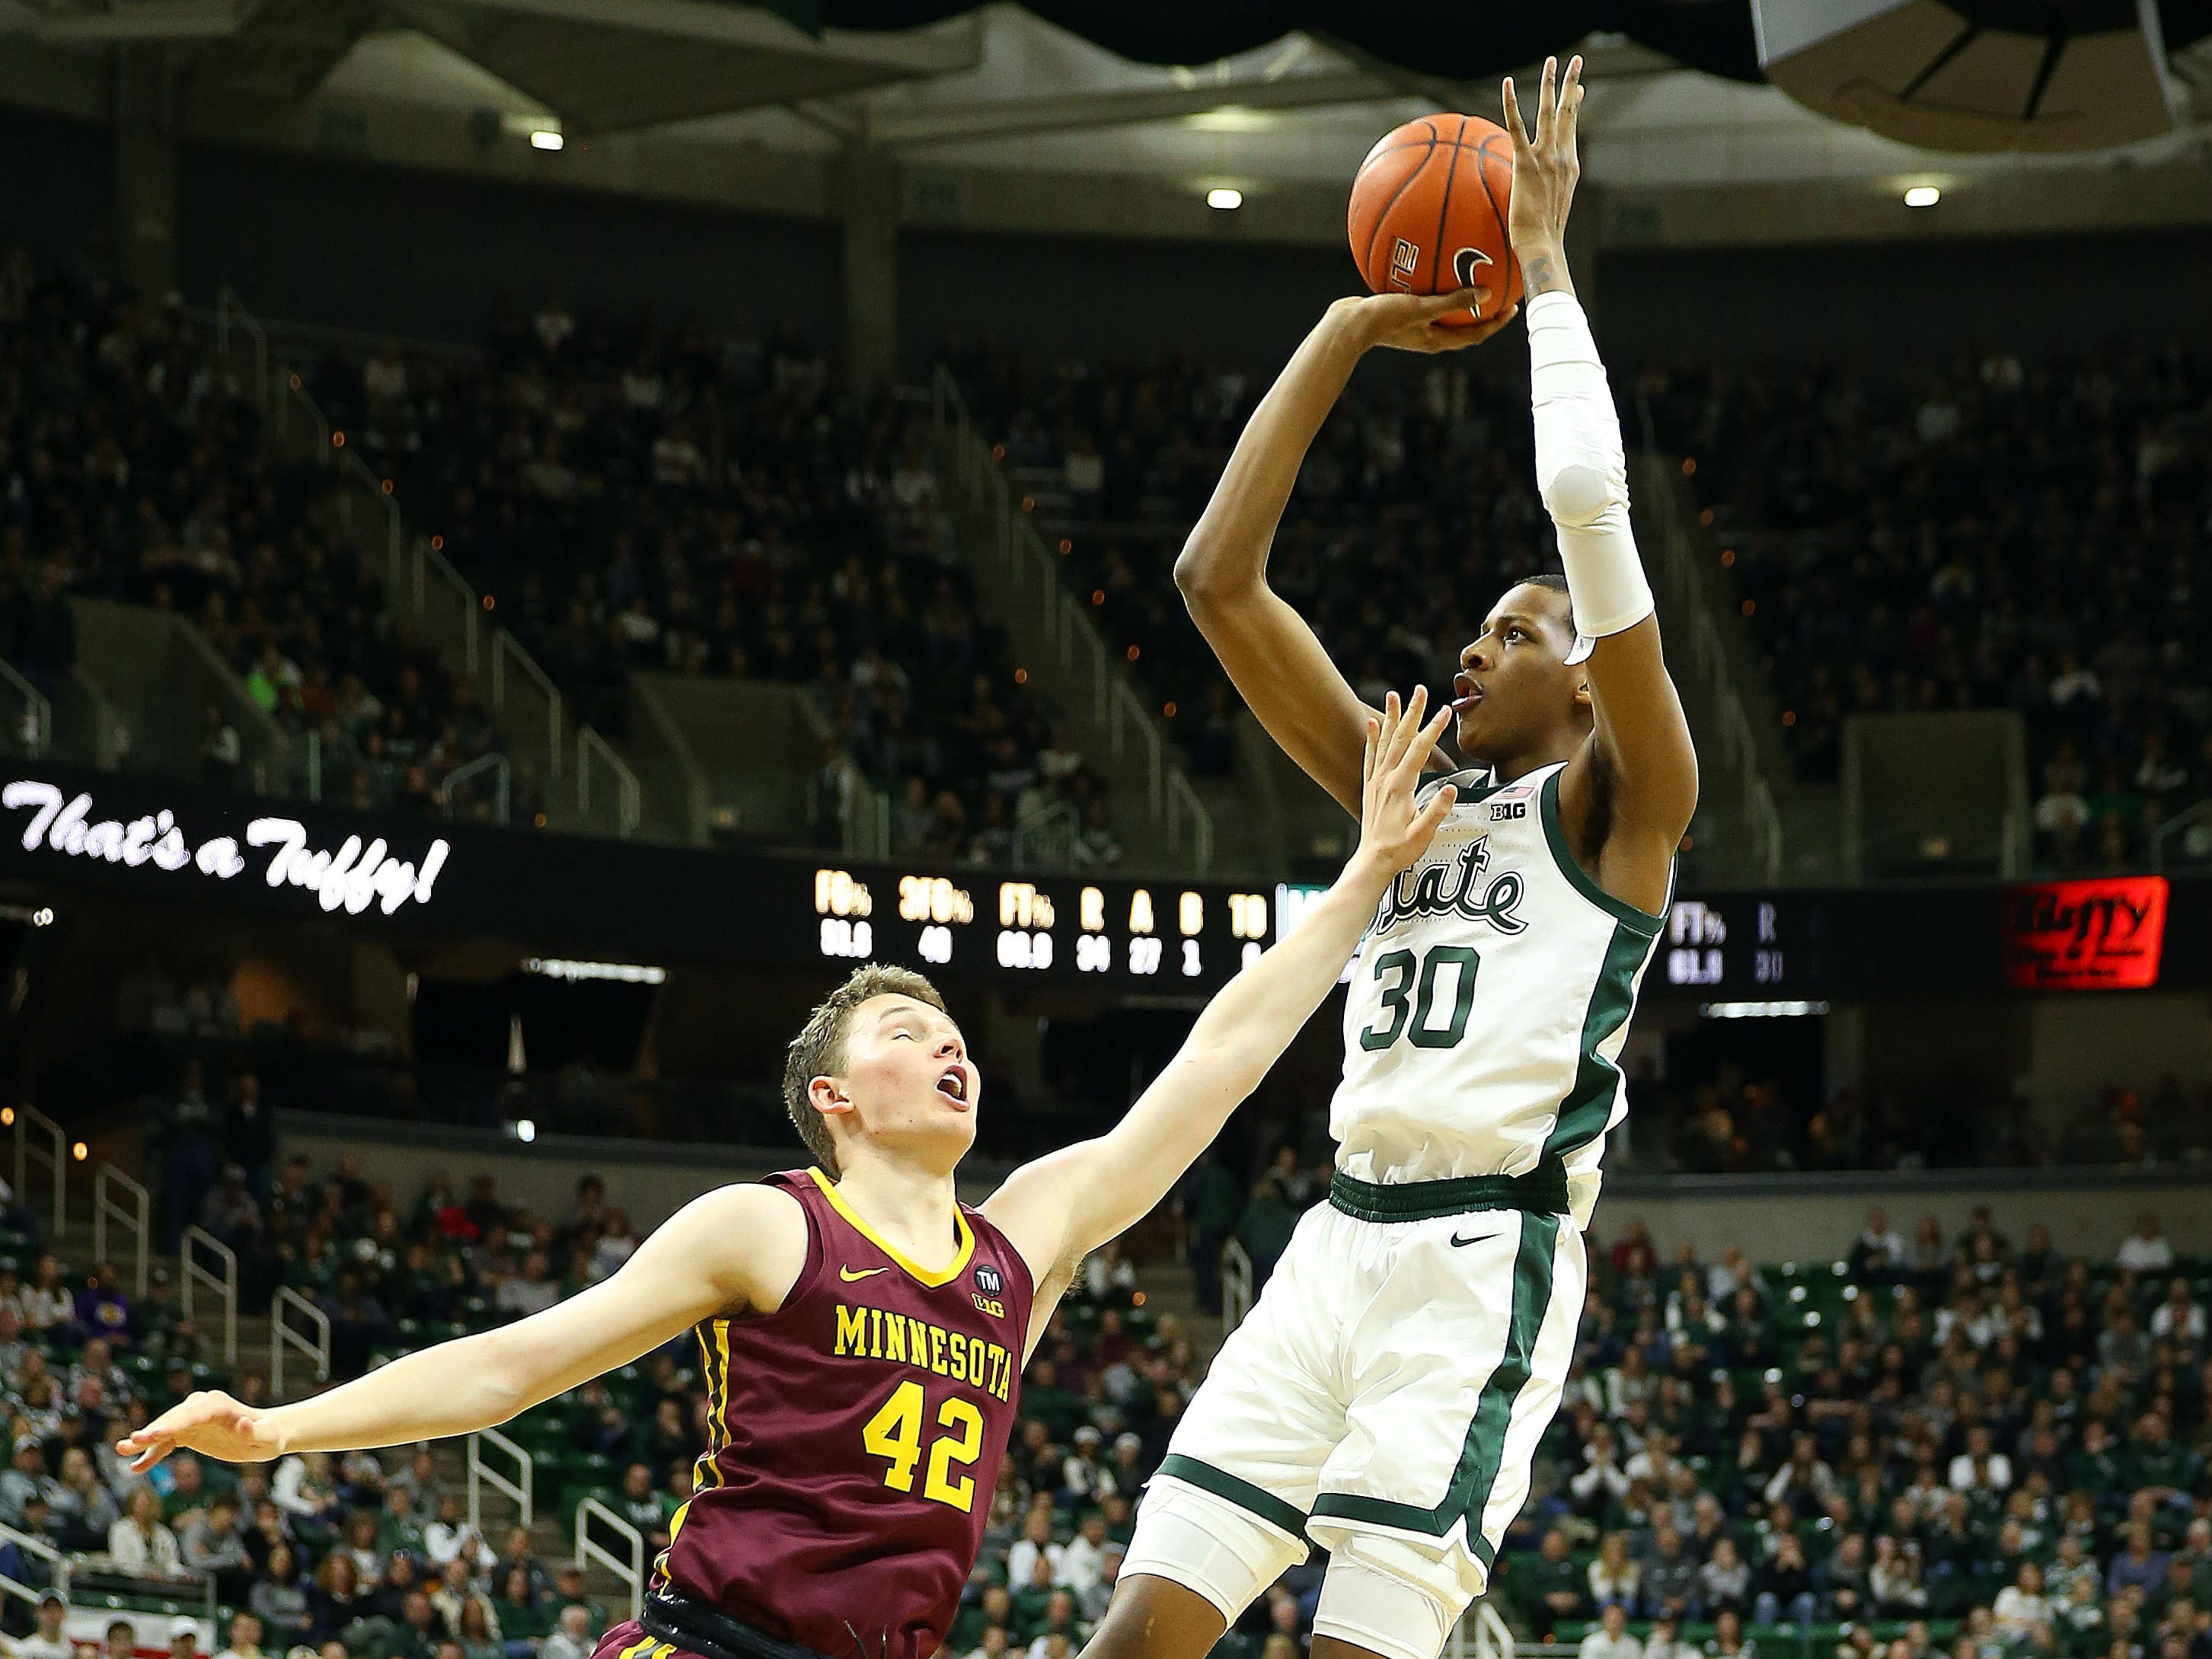 Michigan State's Marcus Bingham Jr. shoots over Minnesota's Michael Hurt during the second half Feb 9, 2019 in East Lansing.